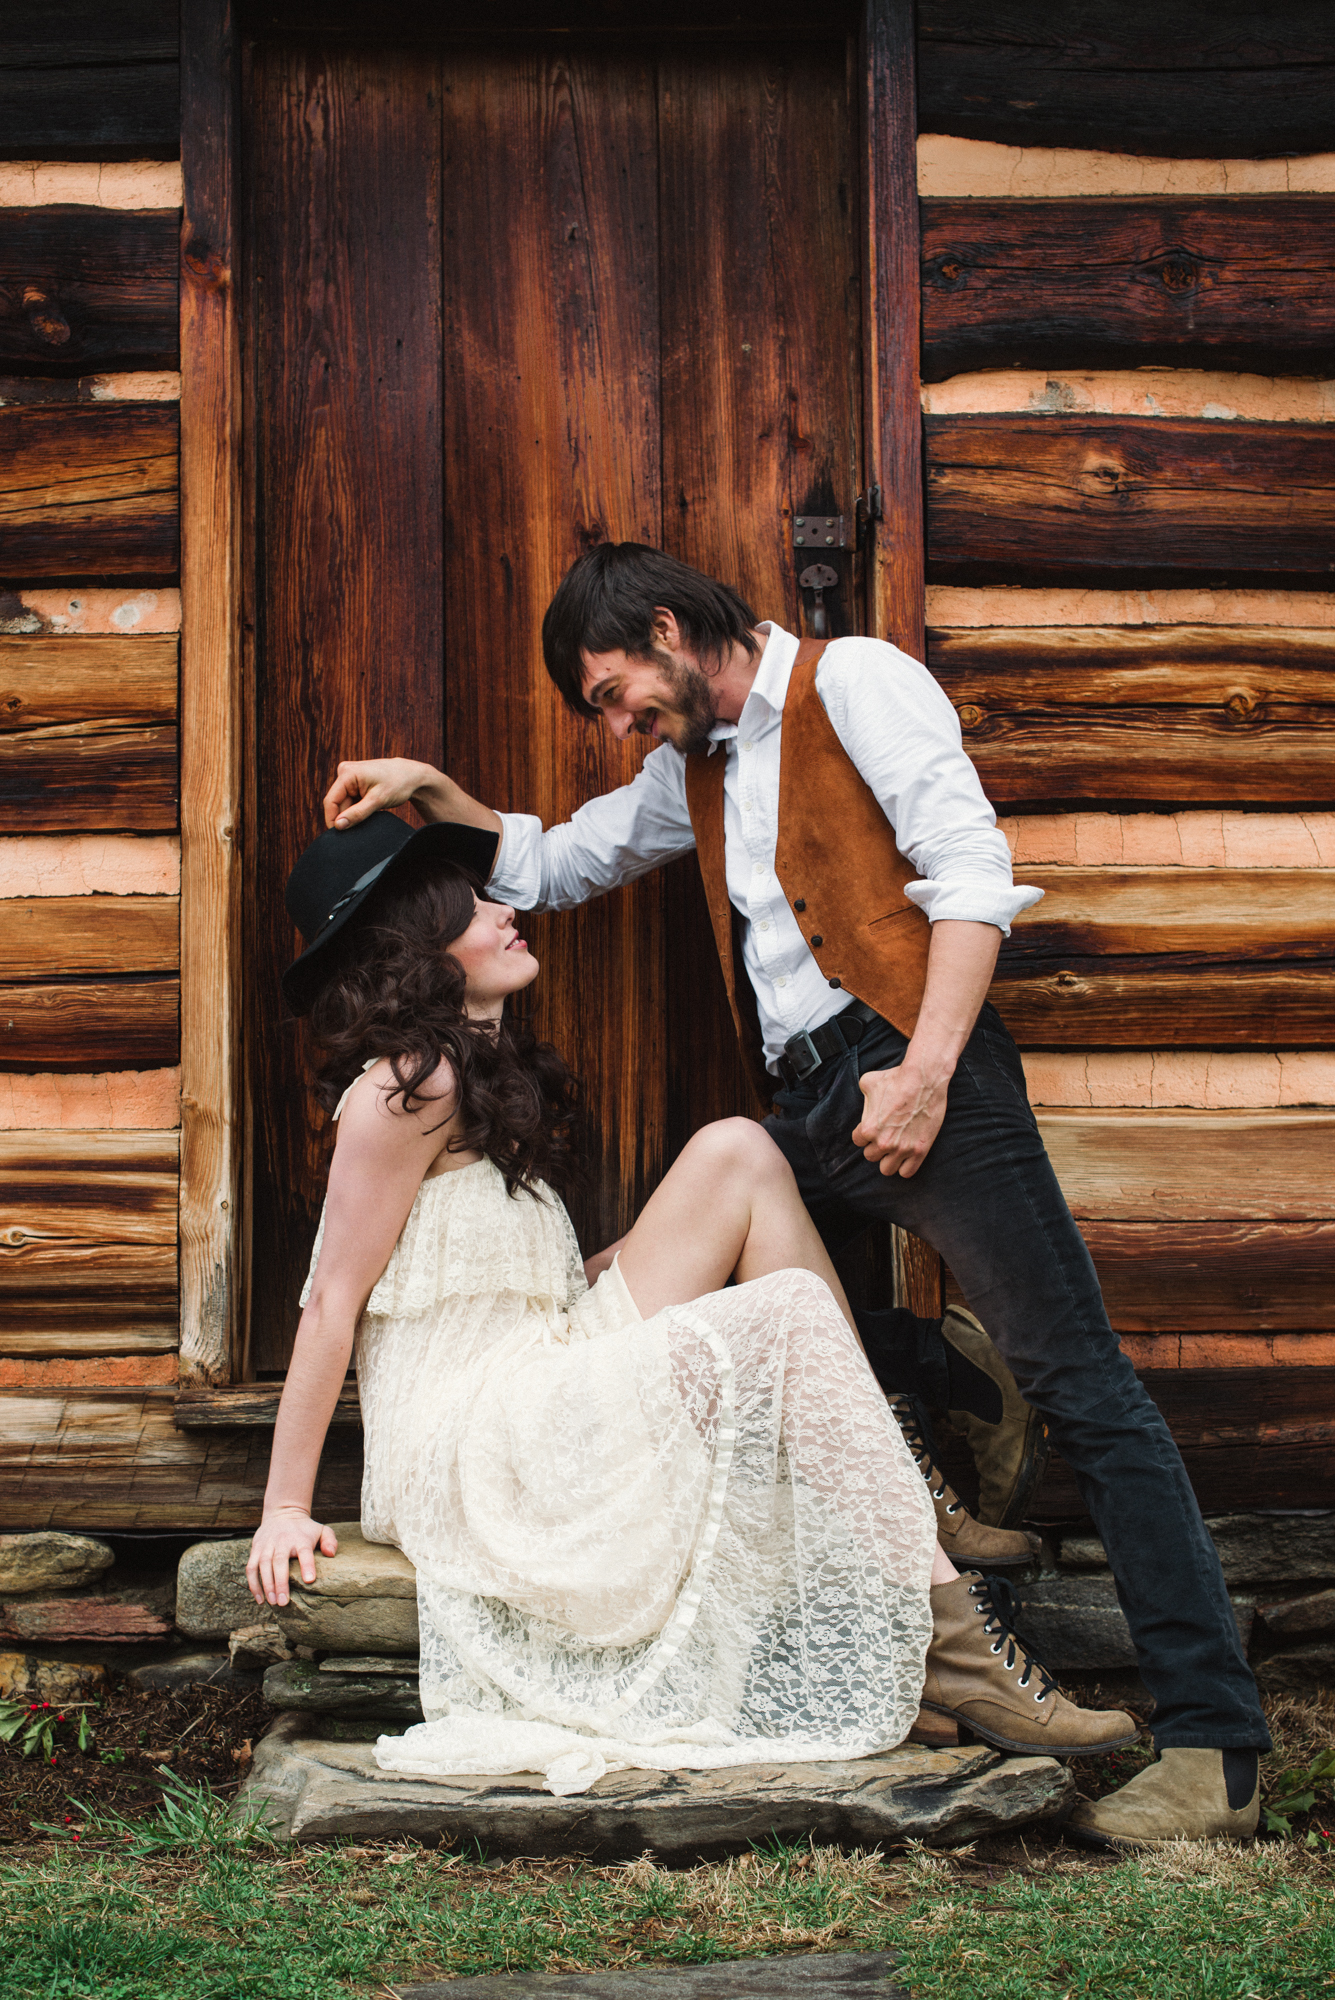 A photo from a look book I shot for PROHAIRKIT.com, Weaverville, NC. (©Carlos Detres 2015)